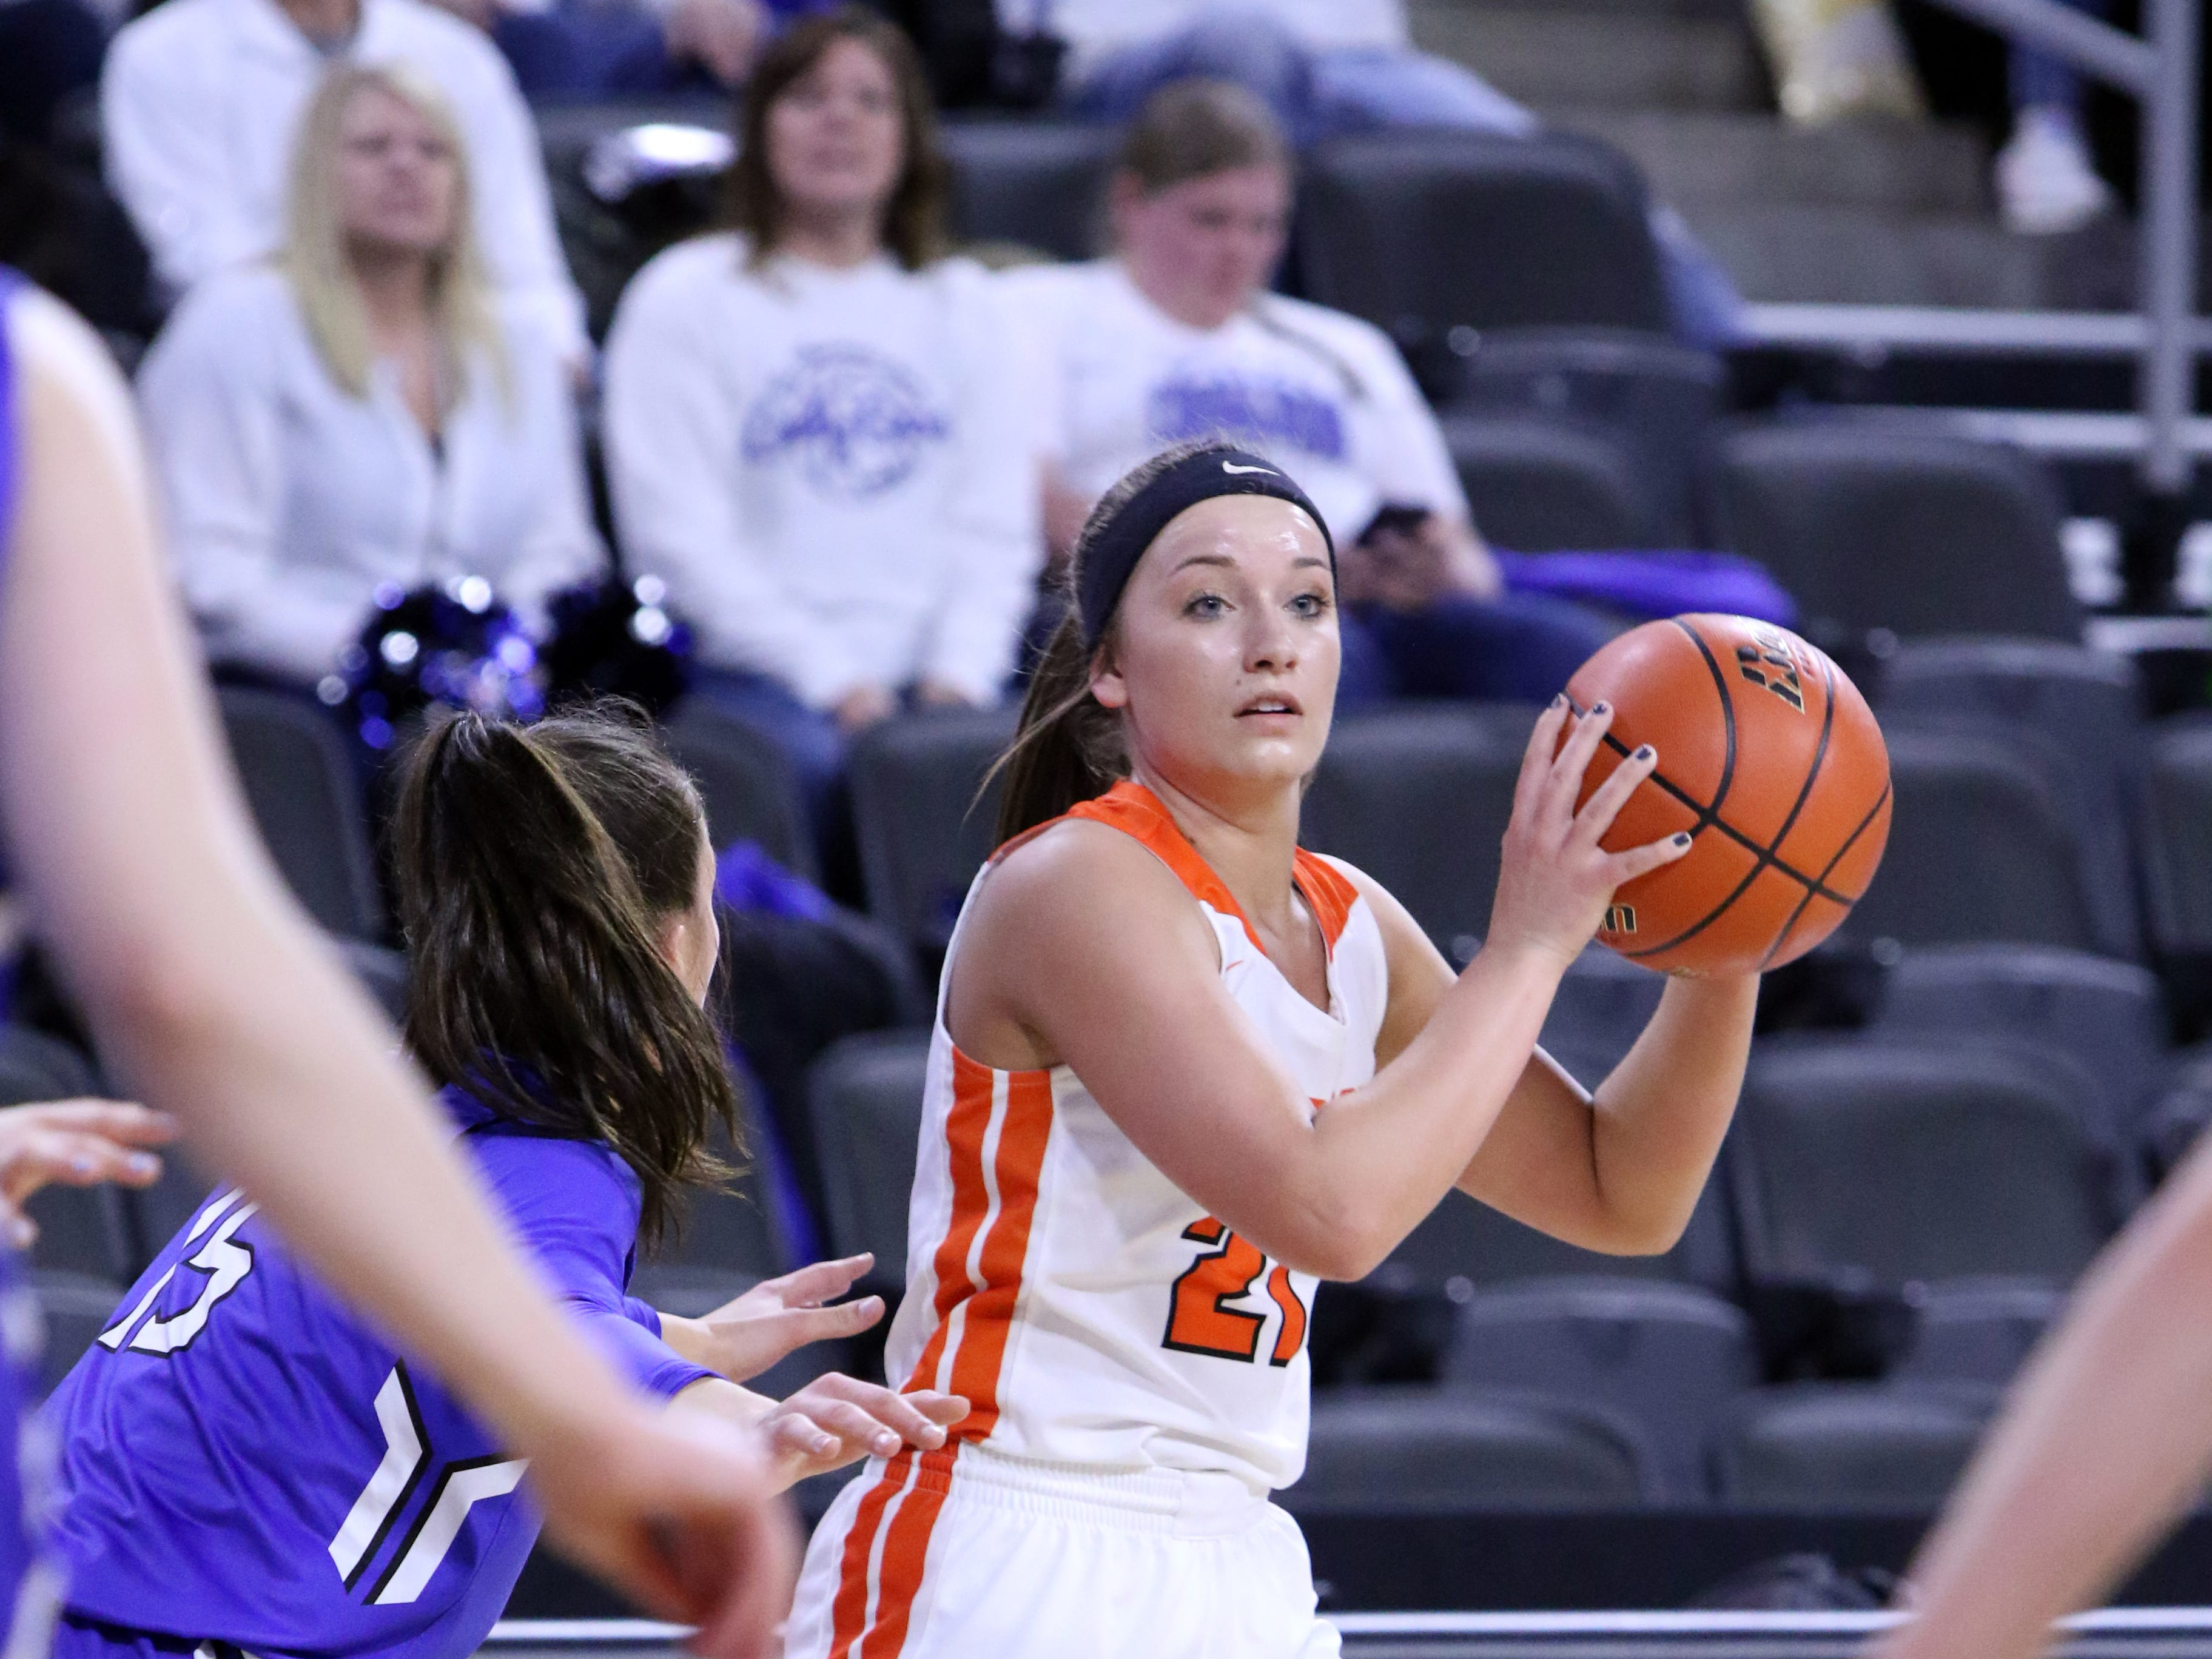 Riley Peters of Lennox gets pressure from Ciara Benson of St Thomas More during Thursday's game at the Premier Center in Sioux Falls.